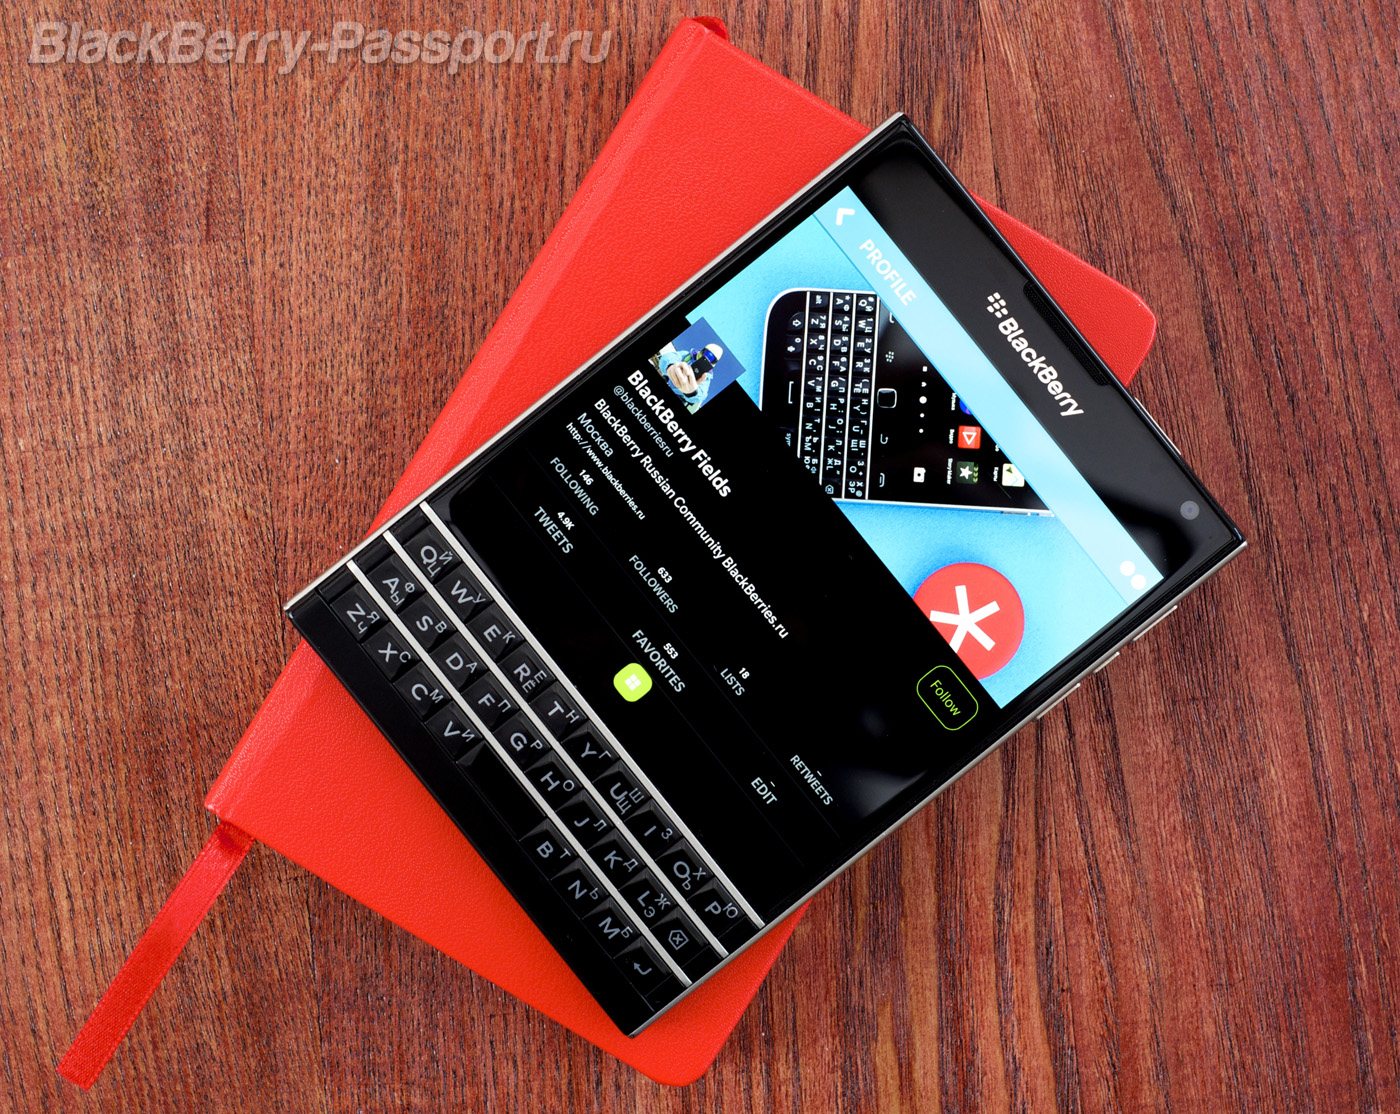 BlackBerry-Passport-Twittly-BP-2